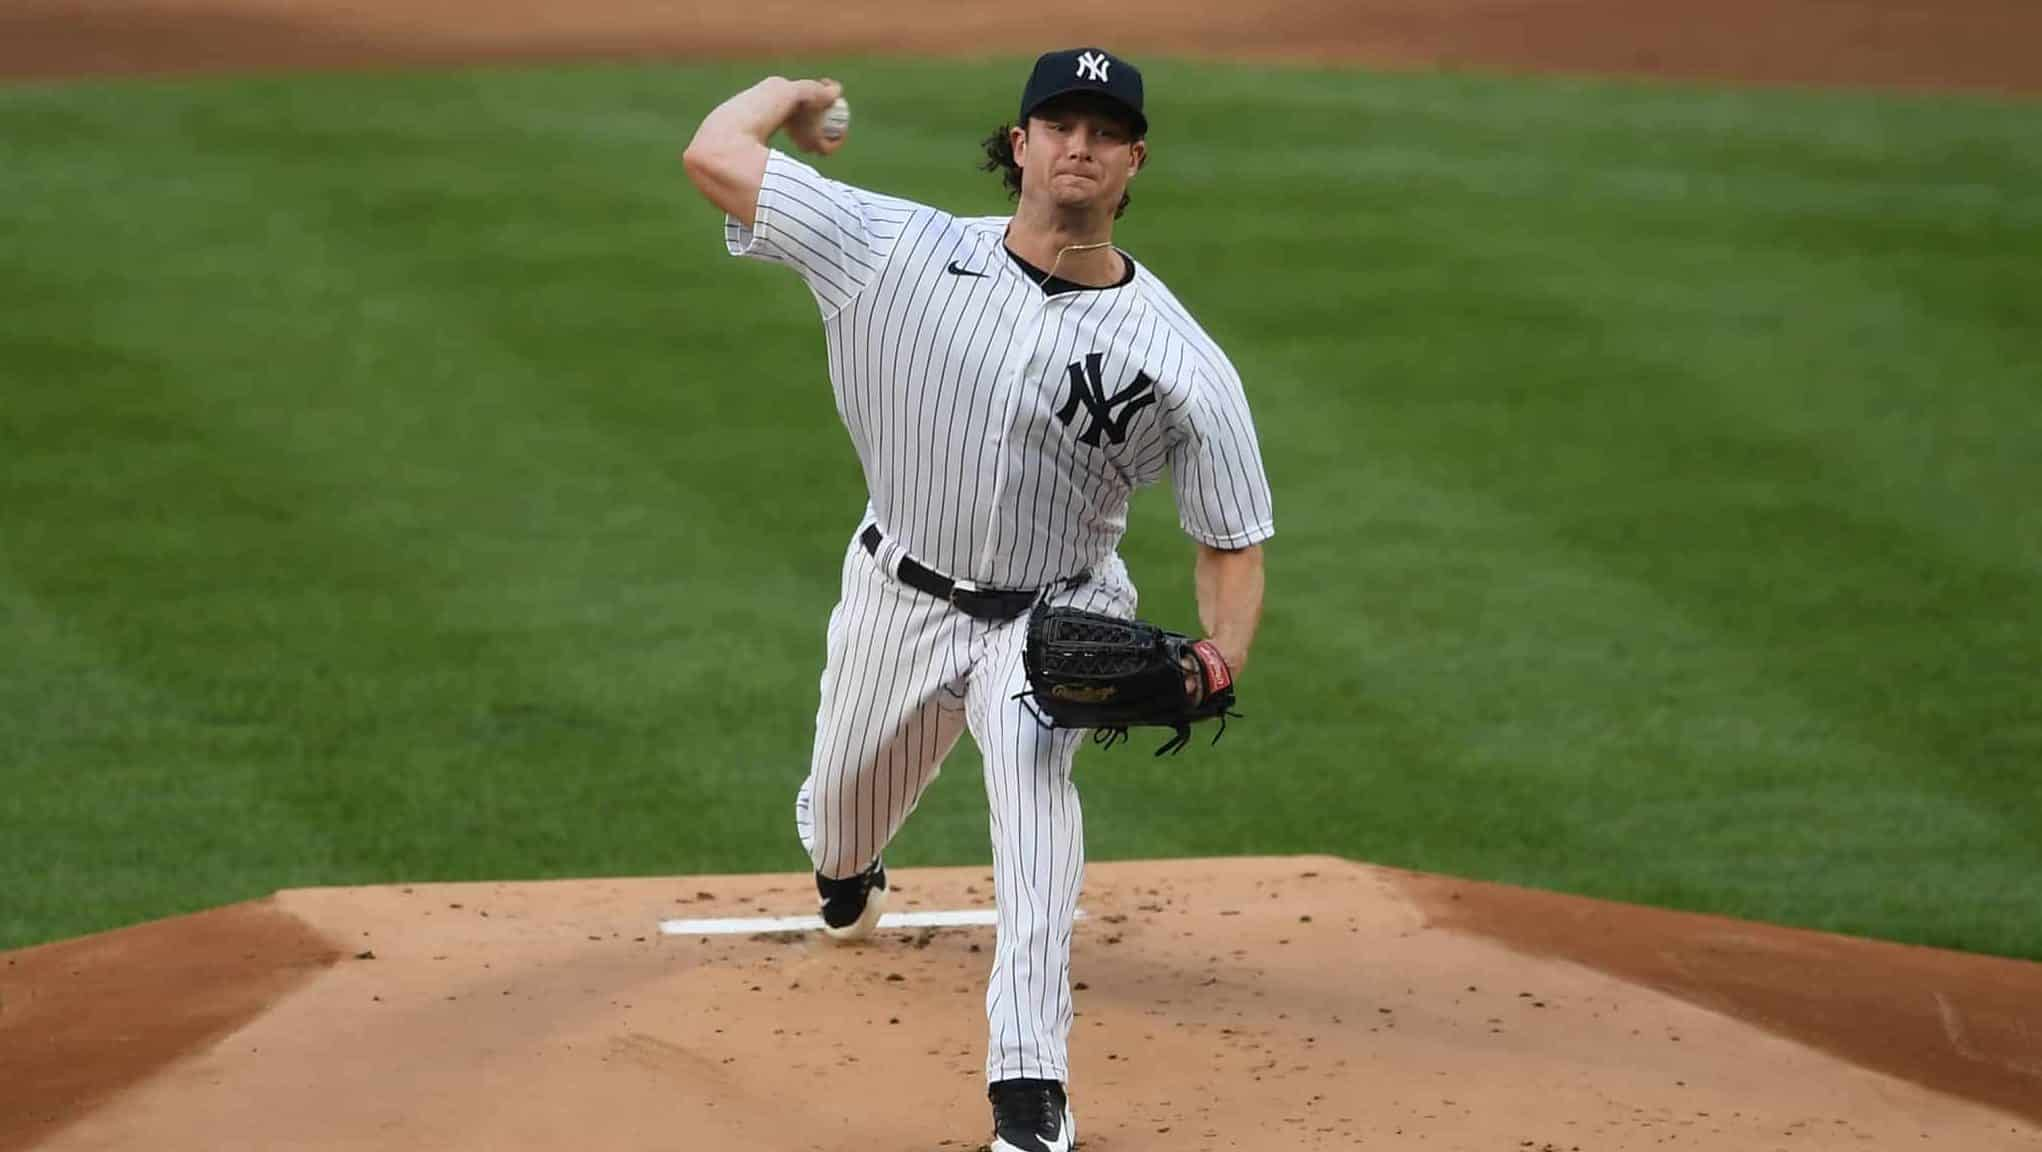 NEW YORK, NEW YORK - AUGUST 14: Gerrit Cole #45 of the New York Yankees pitches during the first inning against the Boston Red Sox at Yankee Stadium on August 14, 2020 in the Bronx borough of New York City.